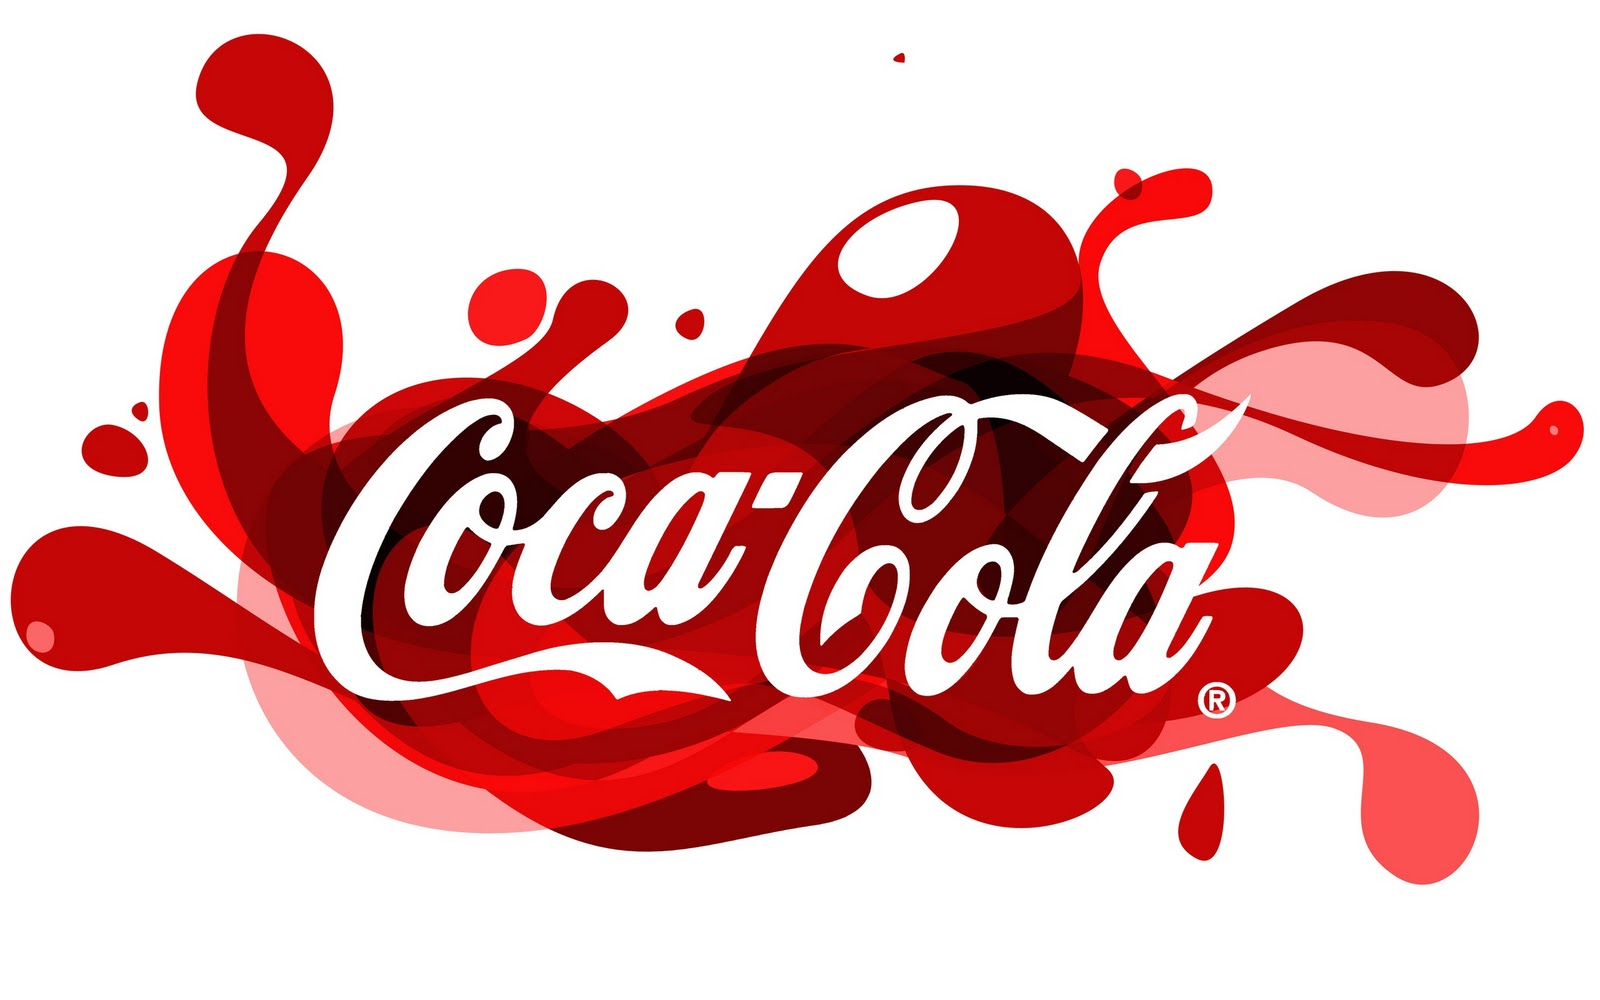 Brands Logos First Looks Wallpapers CokoCola Windows 7 8 and 1600x1000